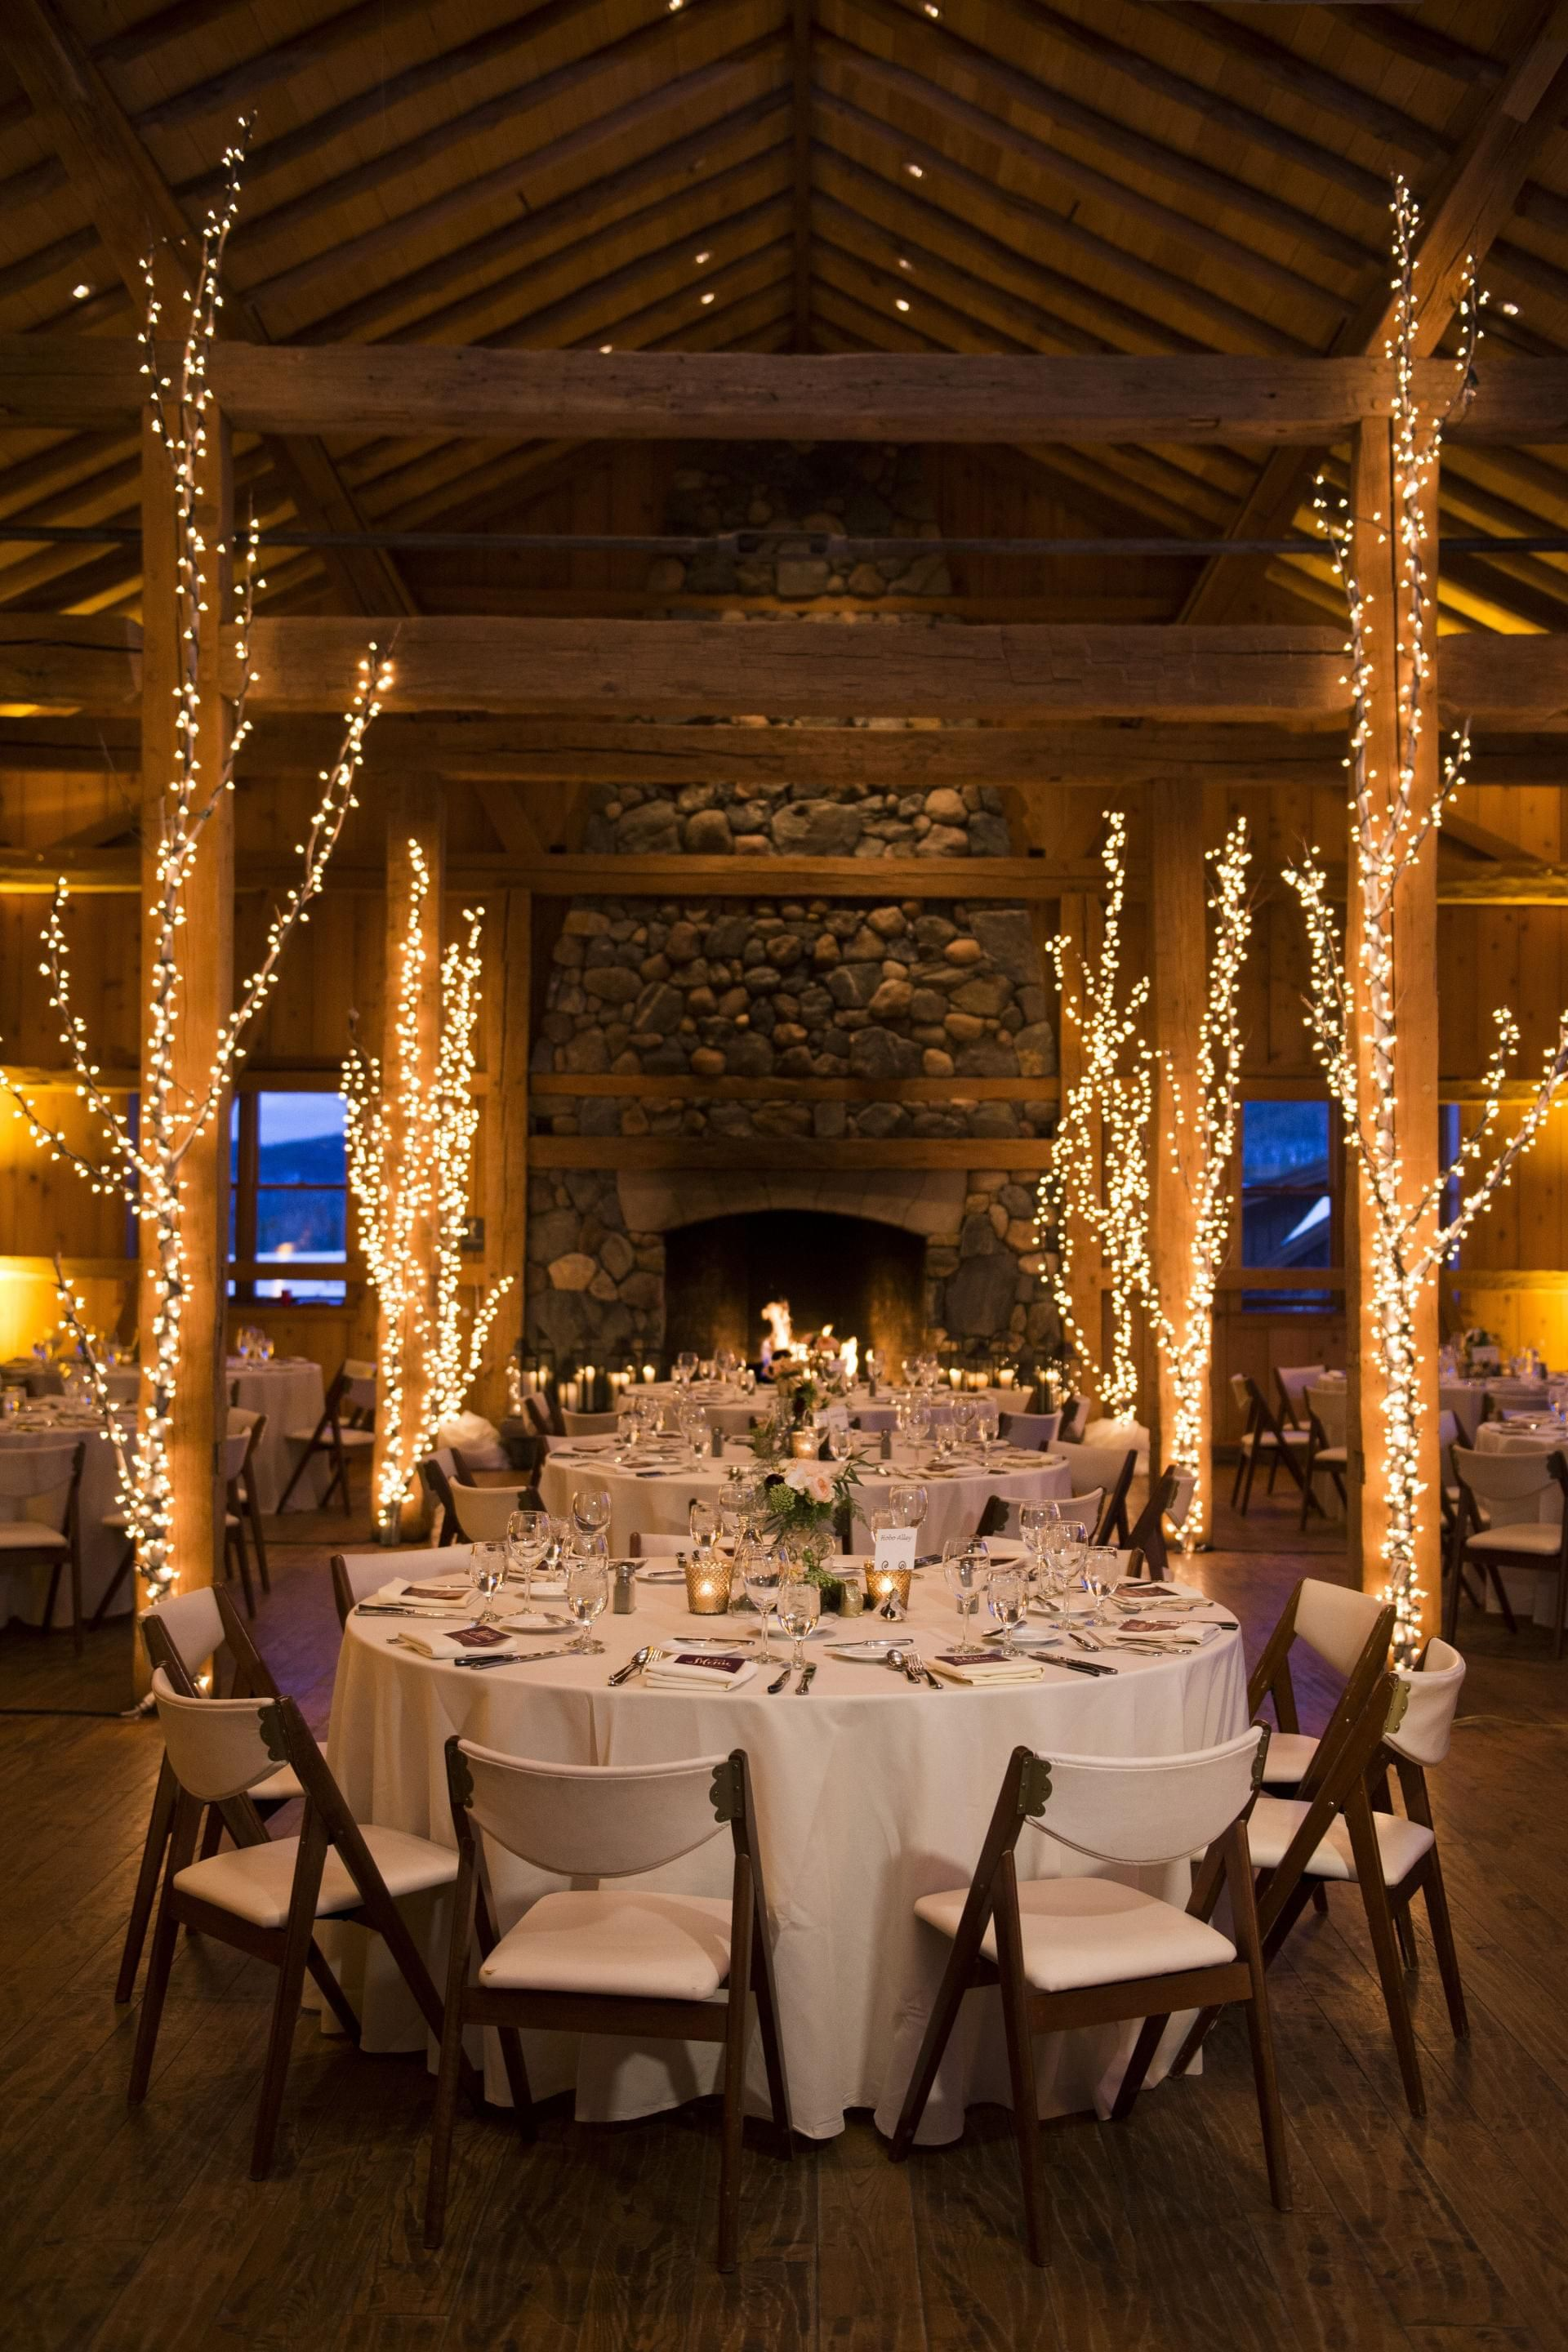 The smarter way to wed wedding weddings and winter weddings lodge wedding white lights tree dcor rustic elegance indoor reception brinton studios junglespirit Image collections